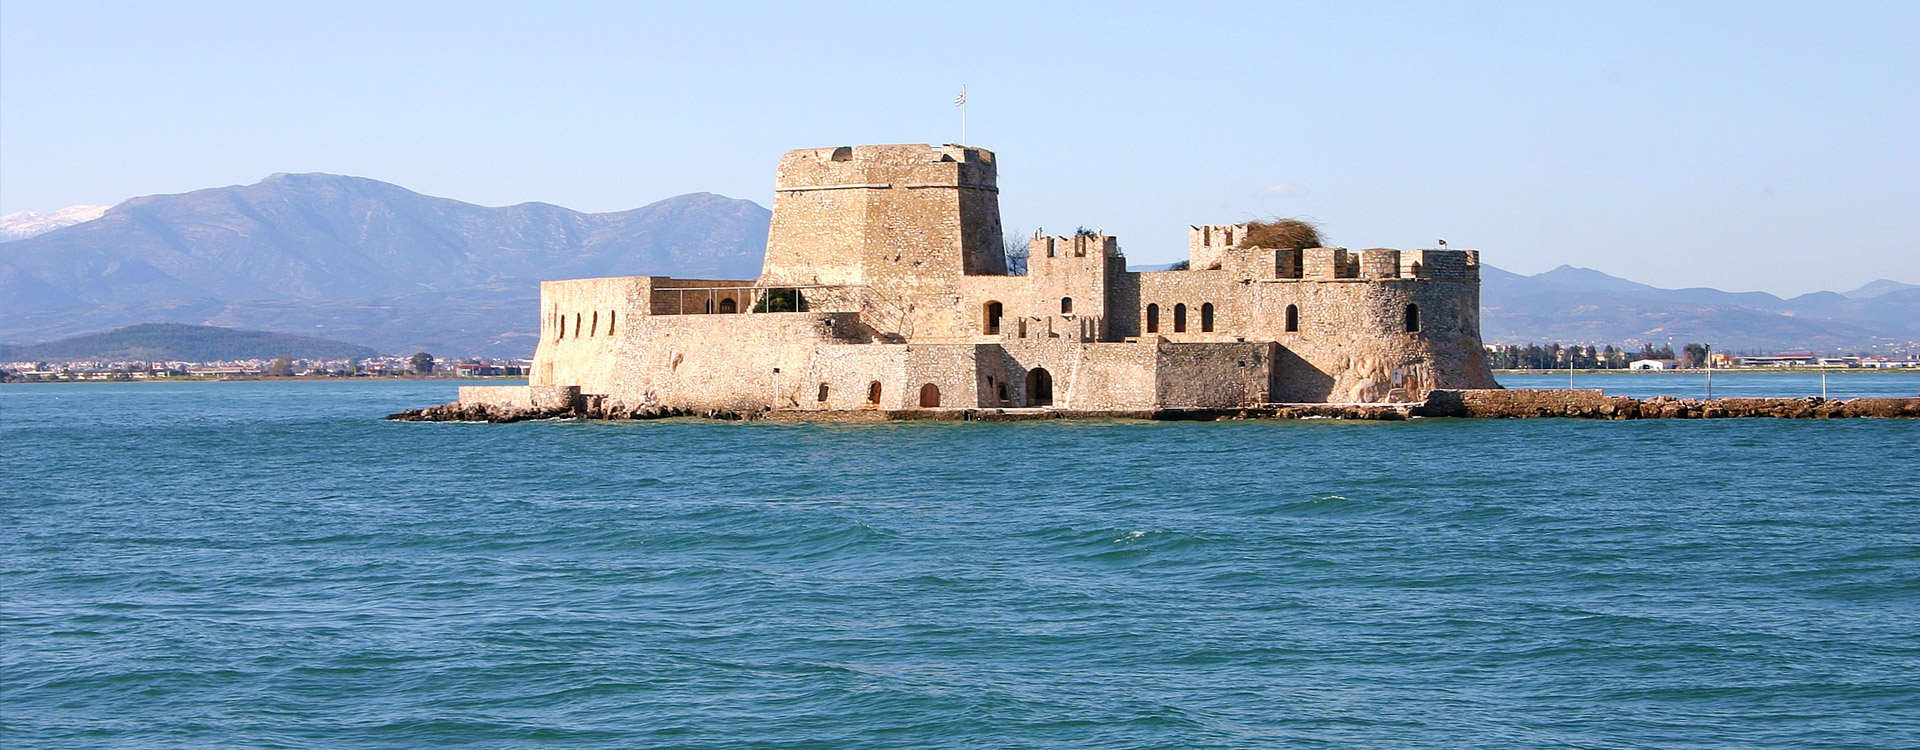 bourji castle in nafplio